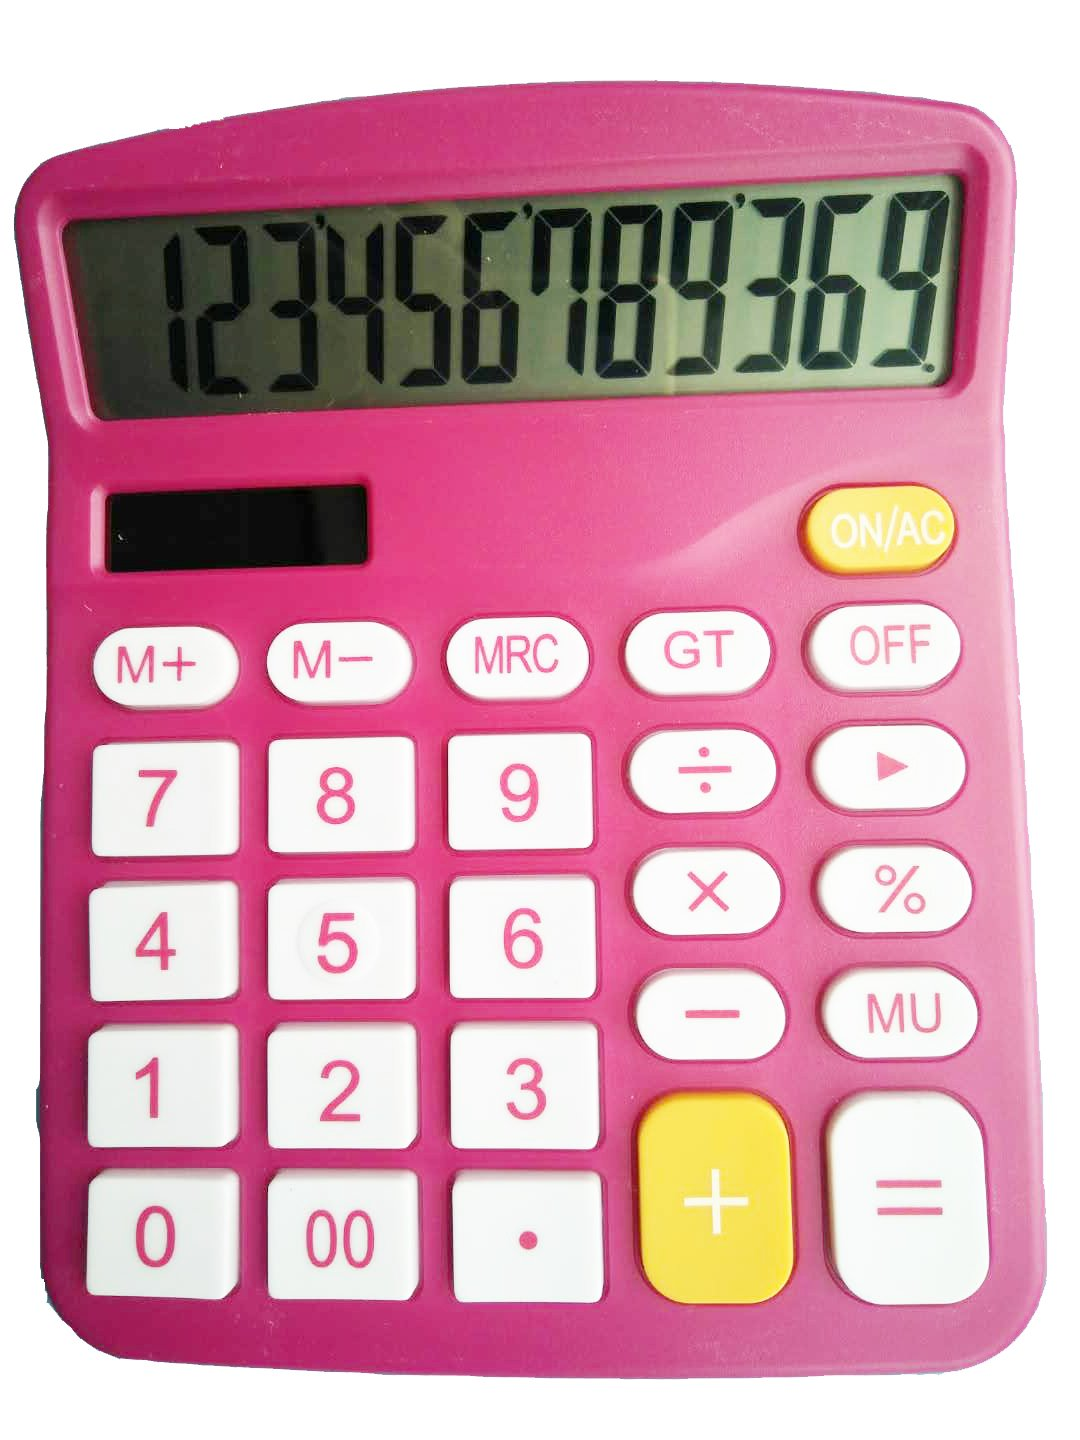 Calculator, Hi-Tech Electronic Desktop Calculator with 12 Digit Large Display, Solar Power LCD Display Office Calculator (Red) Muhwa eCommerce Co. Ltd